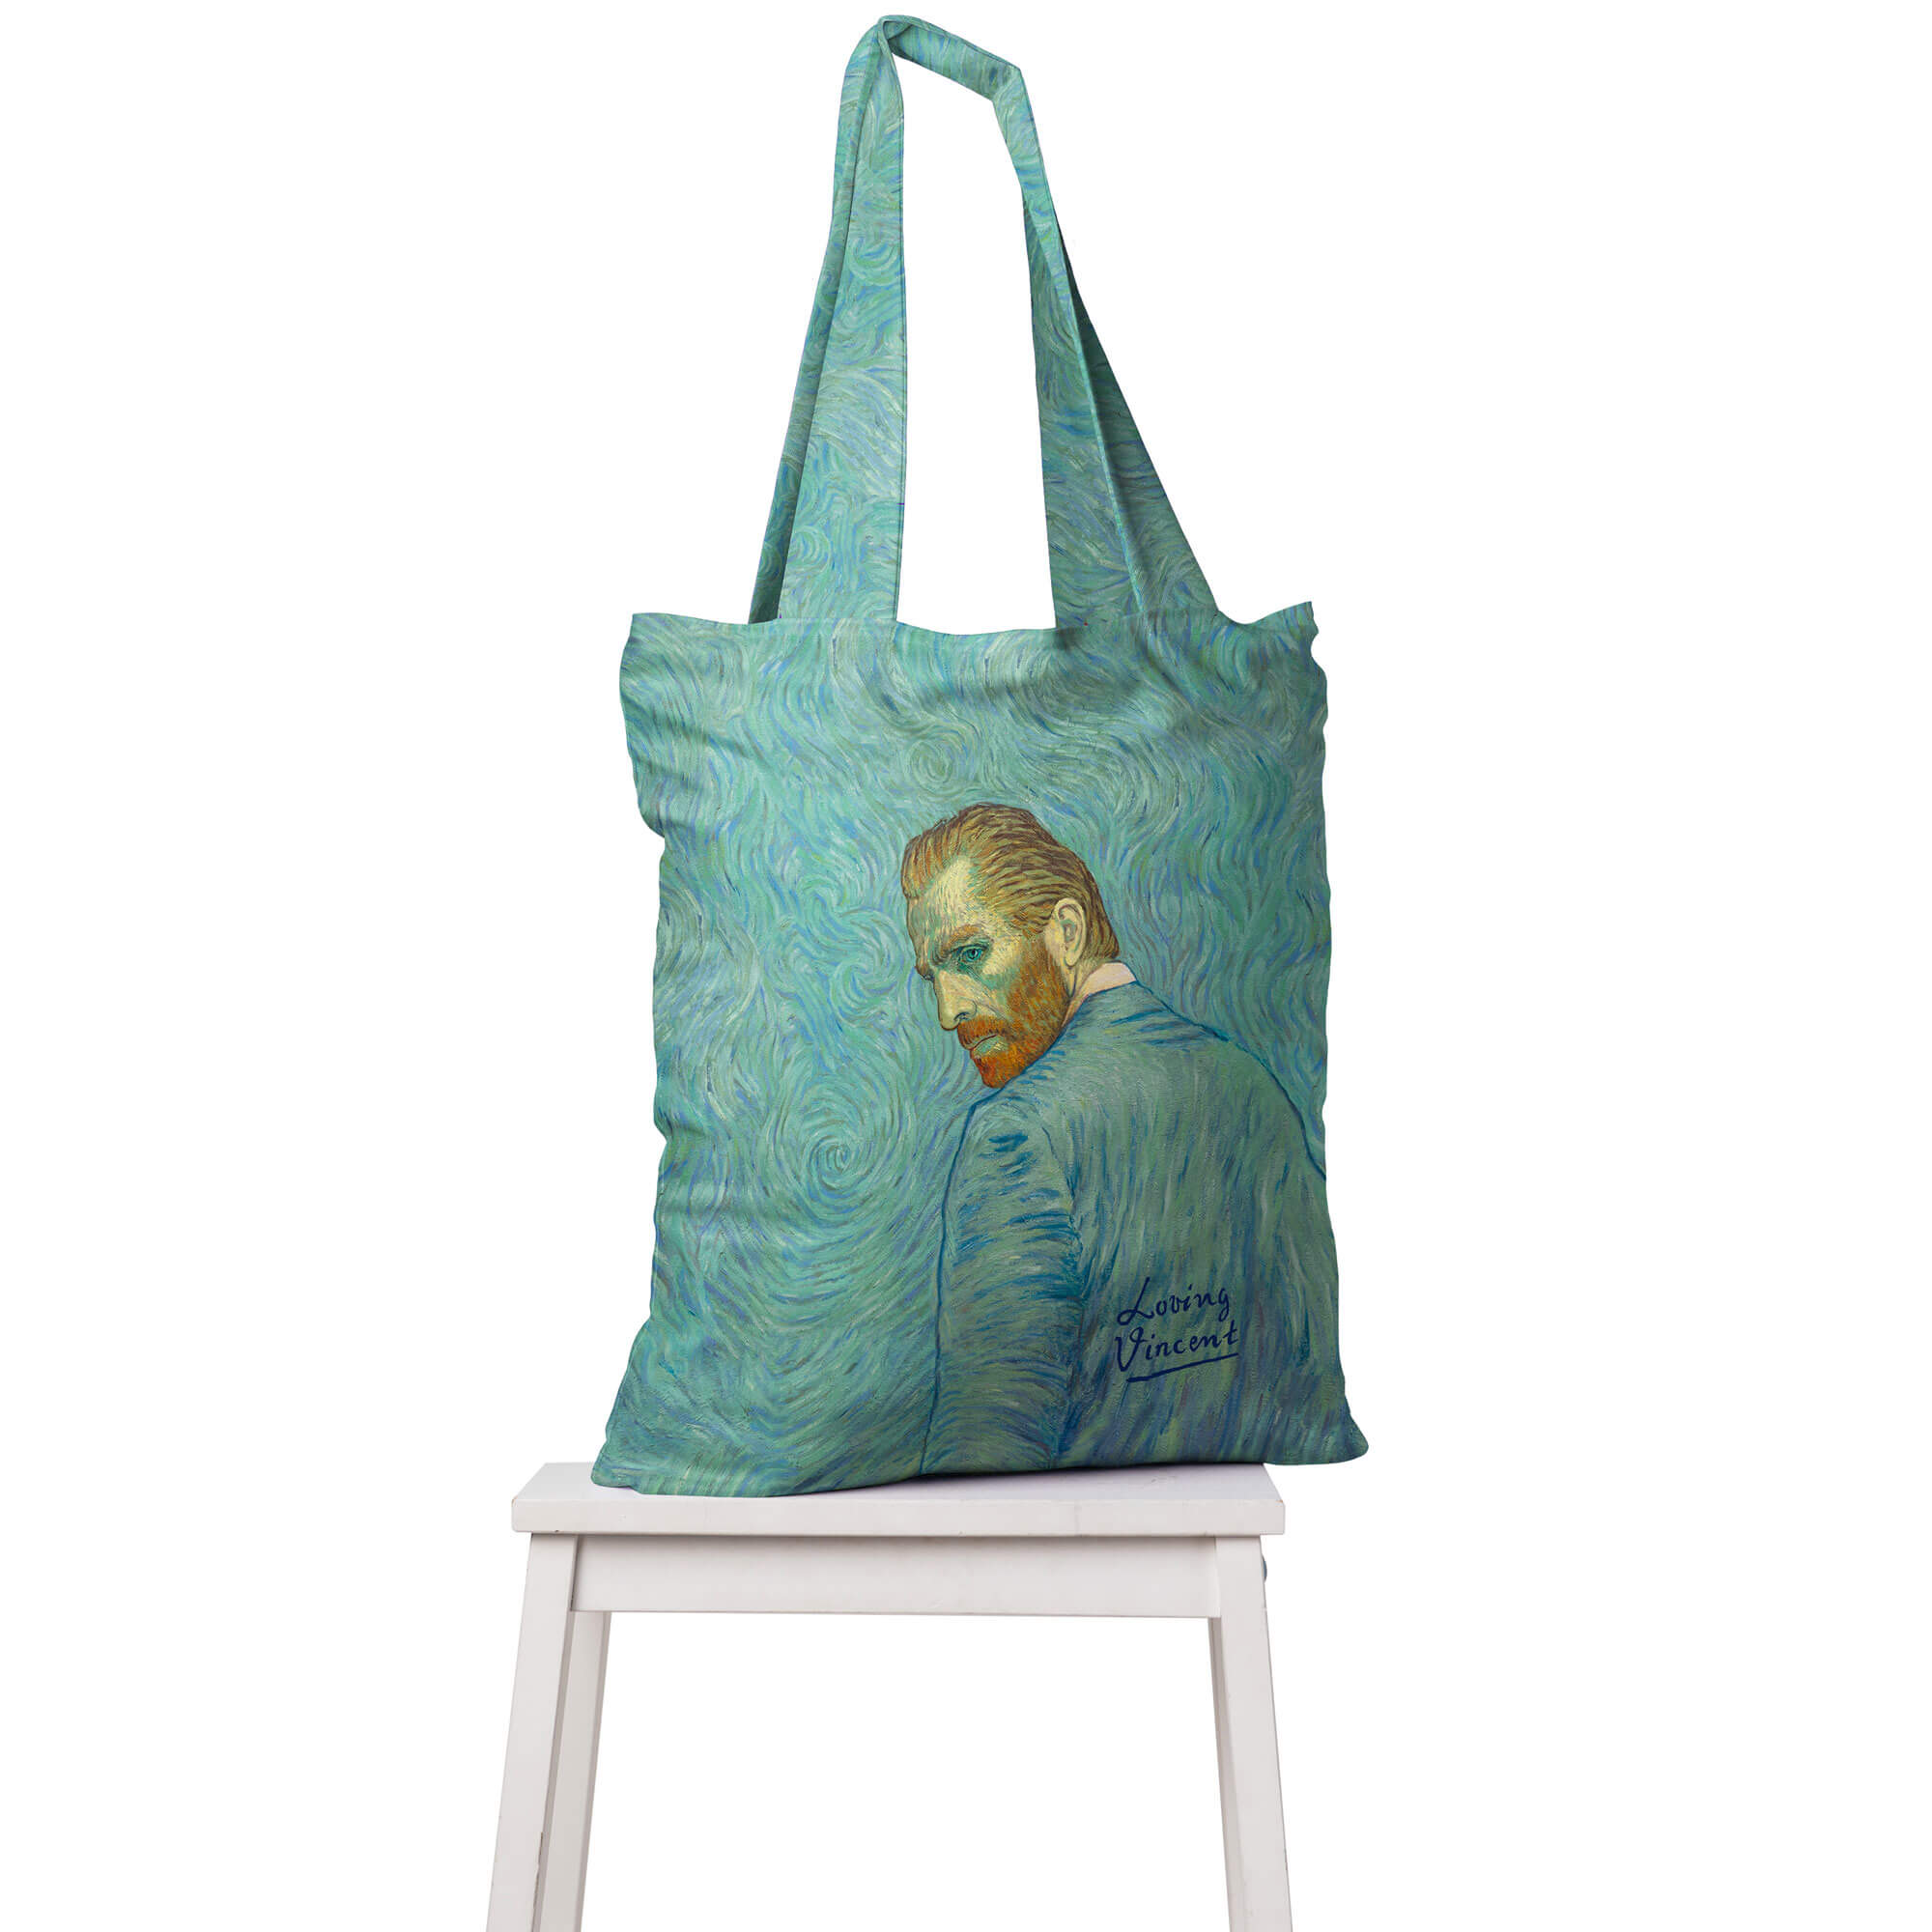 Loving-Vincent_Torba_1_bag_cacofonia_milano_van_gogh_starry_night_sunflowers